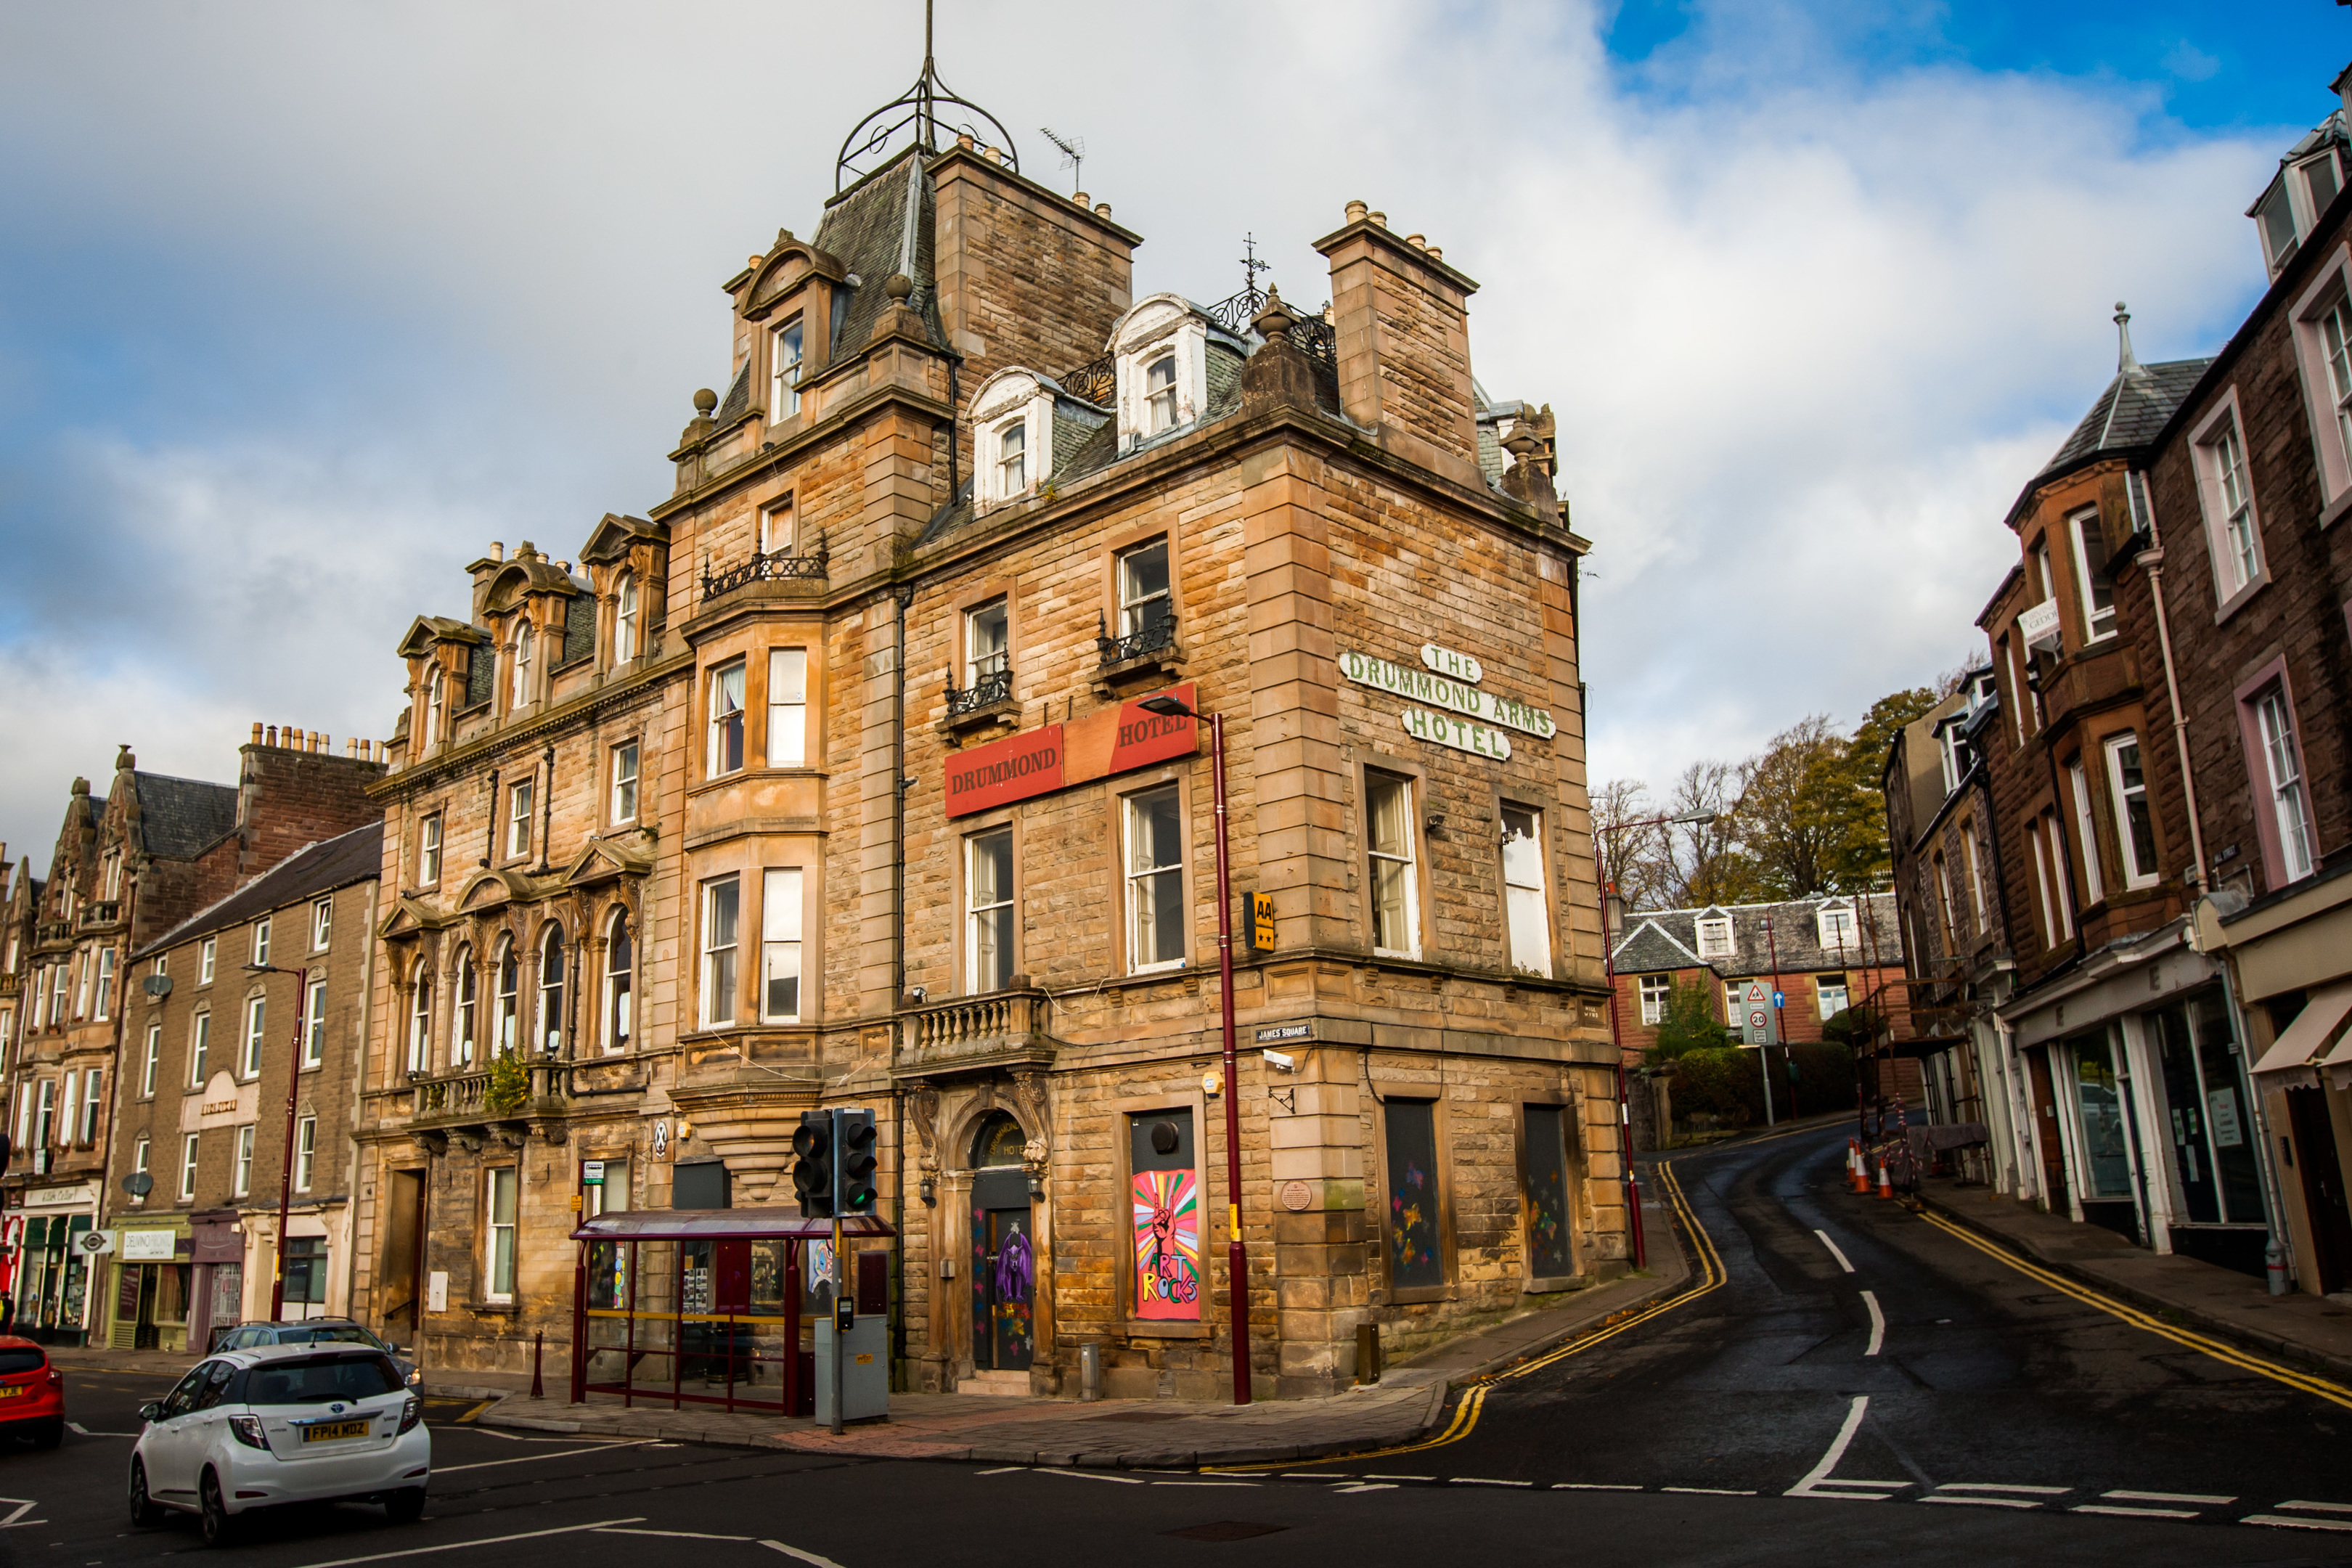 The Drummond Arms Hotel has been deteriorating for years.